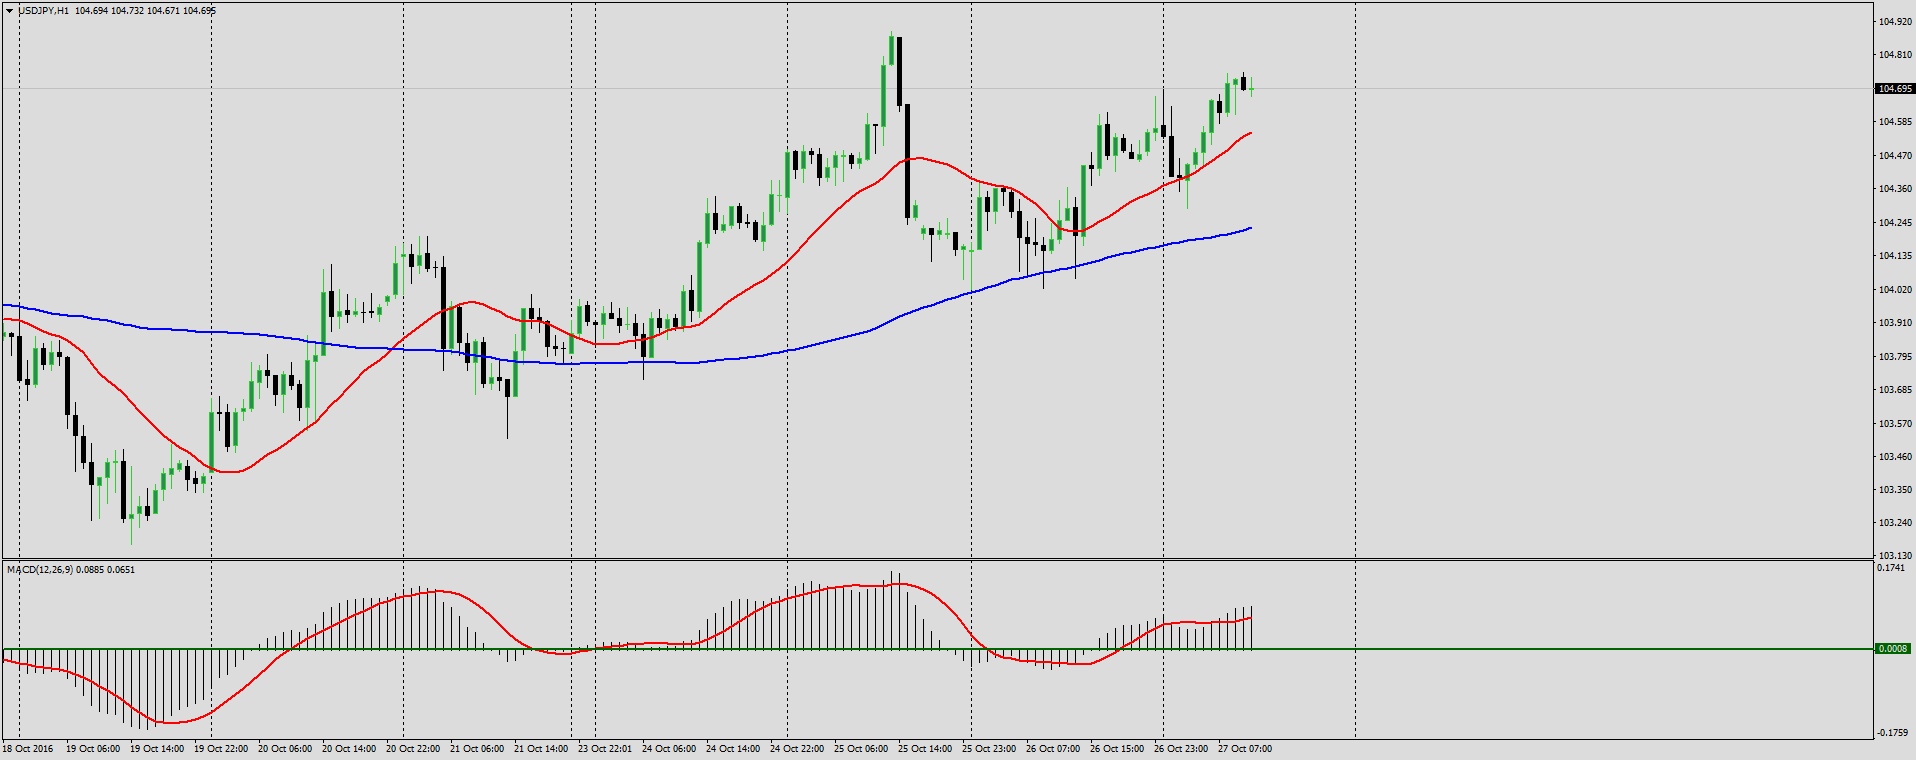 2 MA trading strategy Forex analysis for October 27